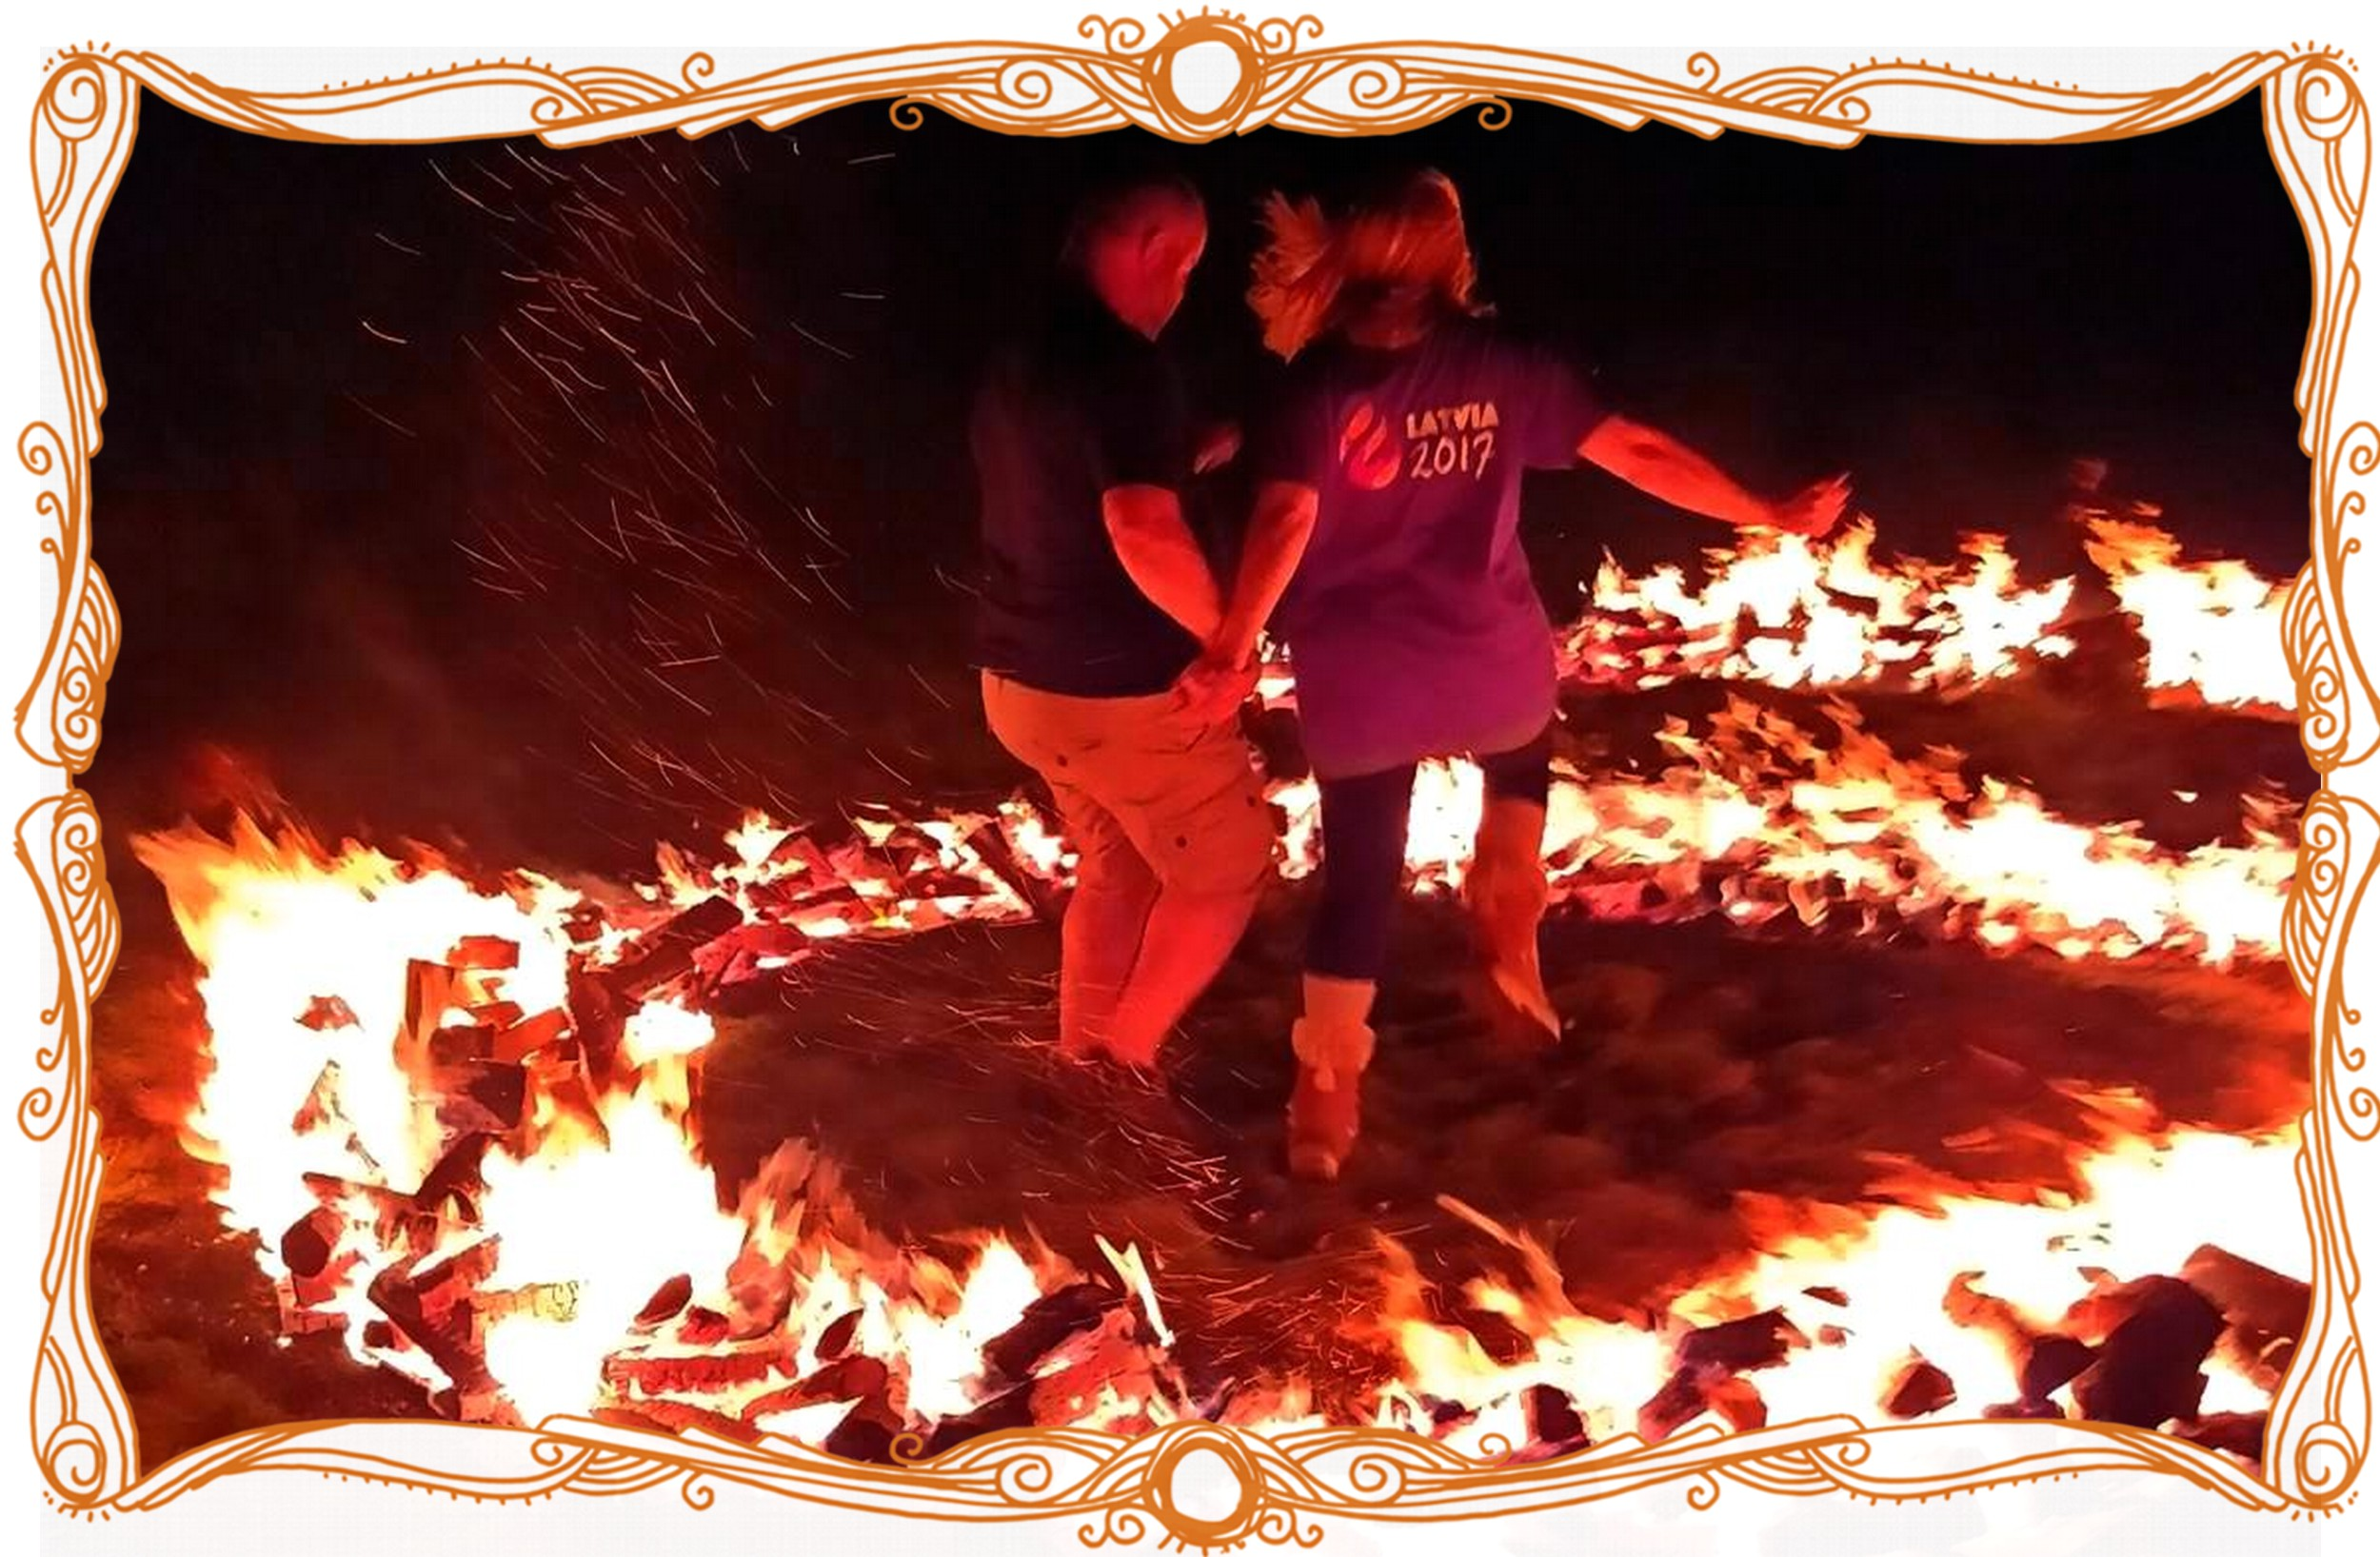 1st Firewalk Symposium photo album